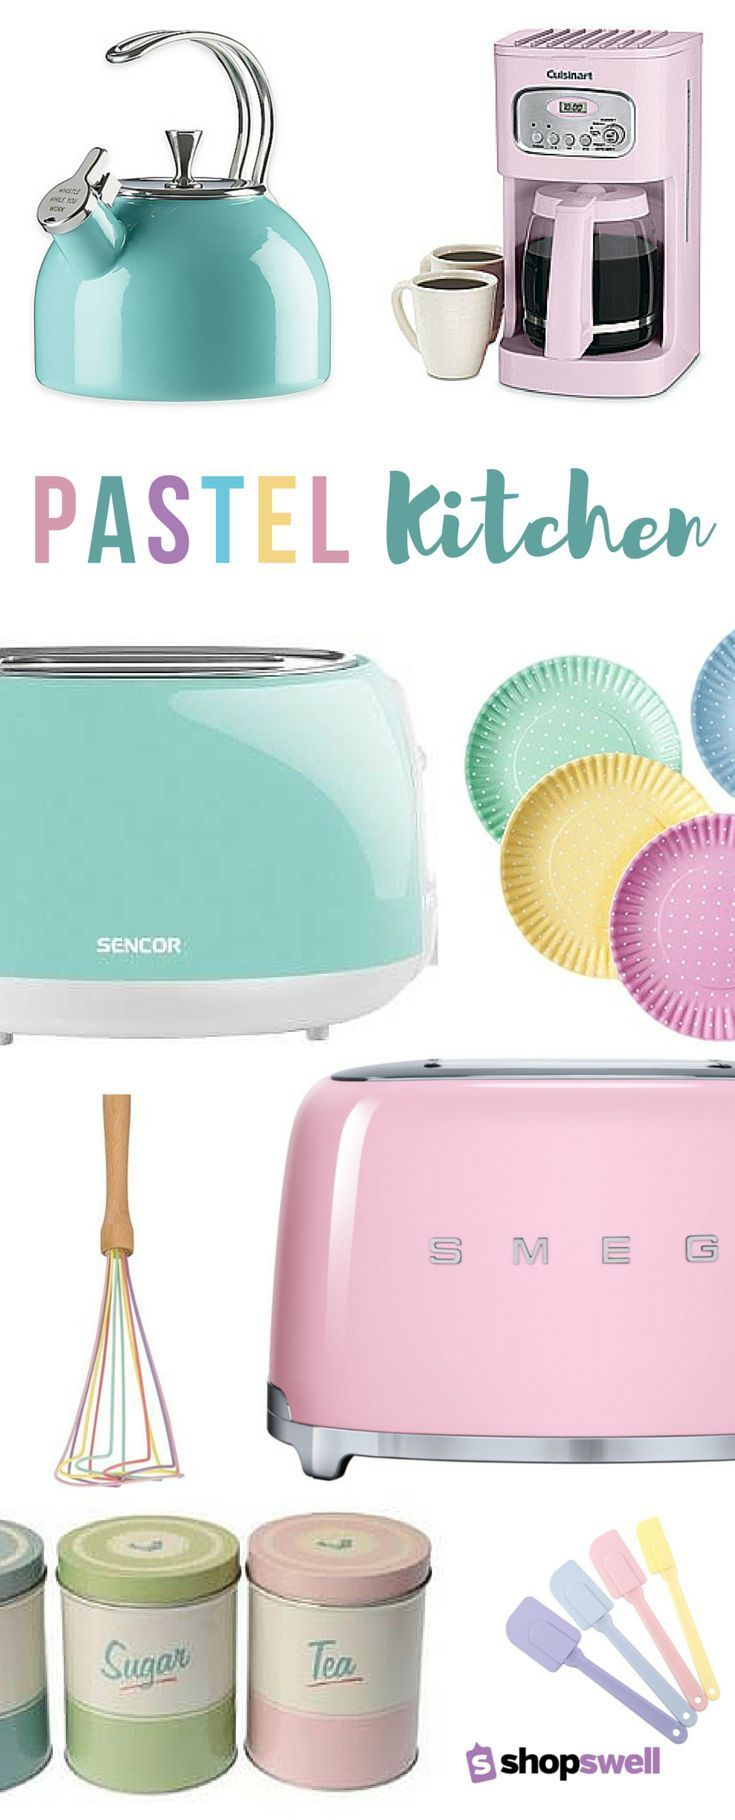 Fun, colorful, retro cooking essentials for the vintage kitchen. Shop the home decor collection now!